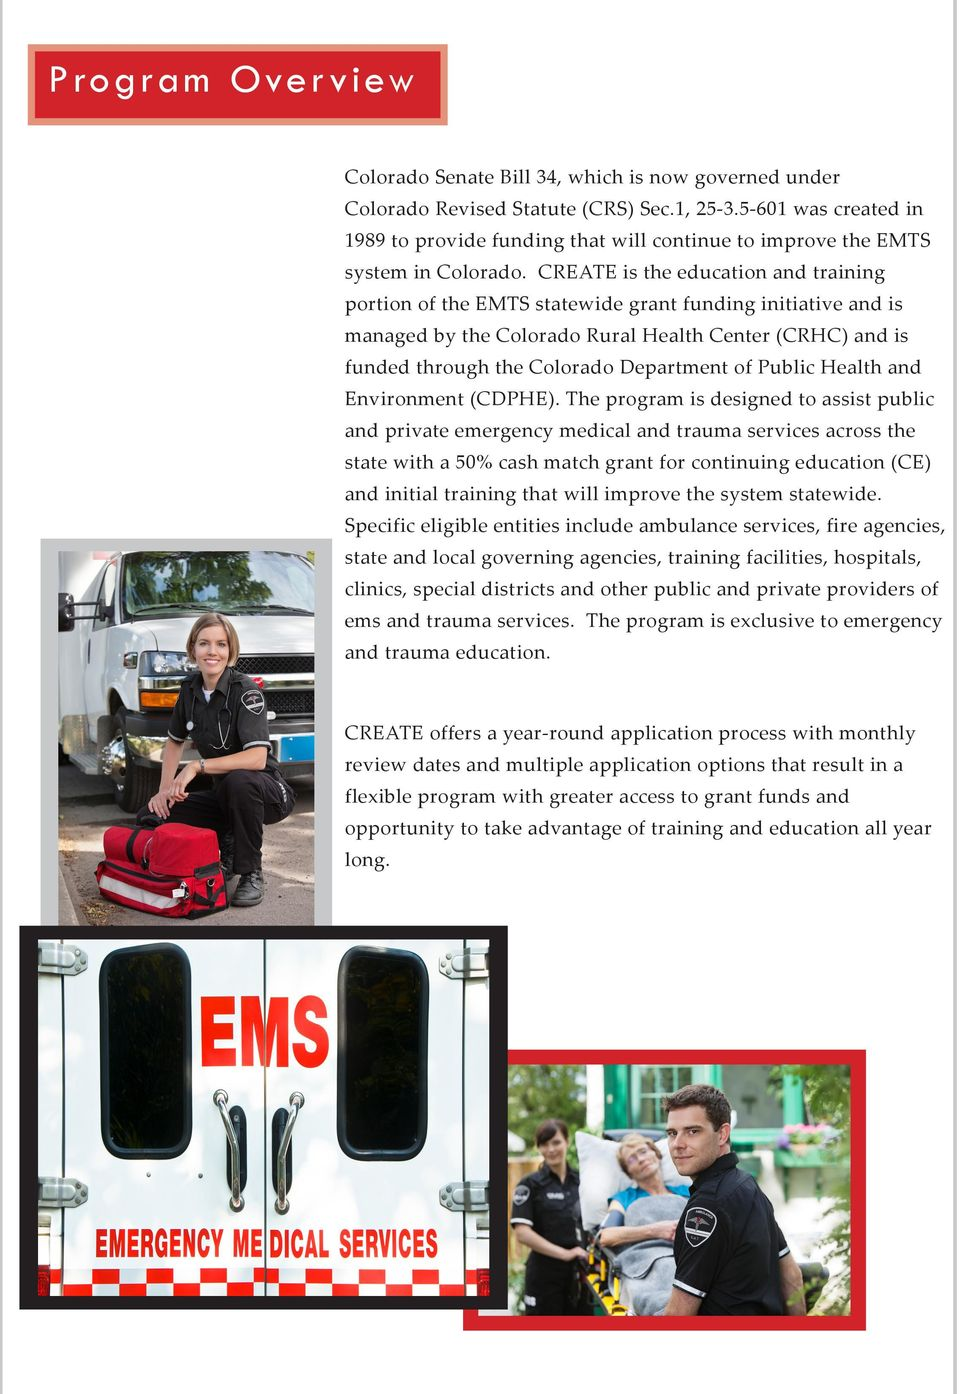 CREATE is the education and training portion of the EMTS statewide grant funding initiative and is managed by the Colorado Rural Health Center (CRHC) and is funded through the Colorado Department of